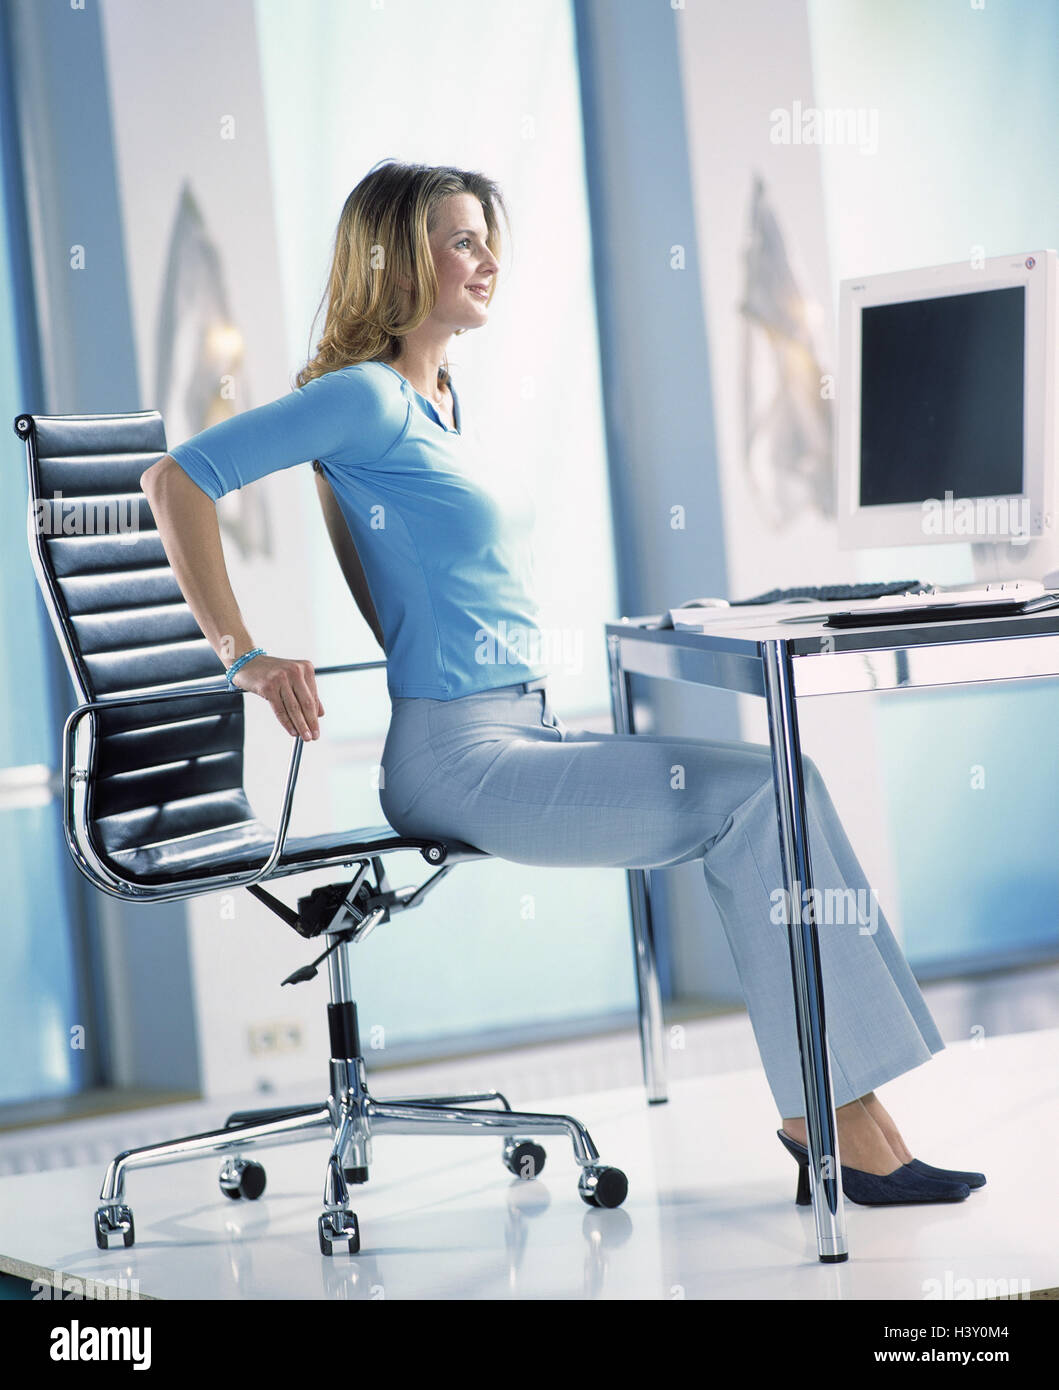 Office relaxation Comfy Workplace Clerks Gymnastics Woman Office Workers Relaxation Exercises Relaxation Musculature Position Dehnübungen Ergonomics Position Change Alamy Workplace Clerks Gymnastics Woman Office Workers Relaxation